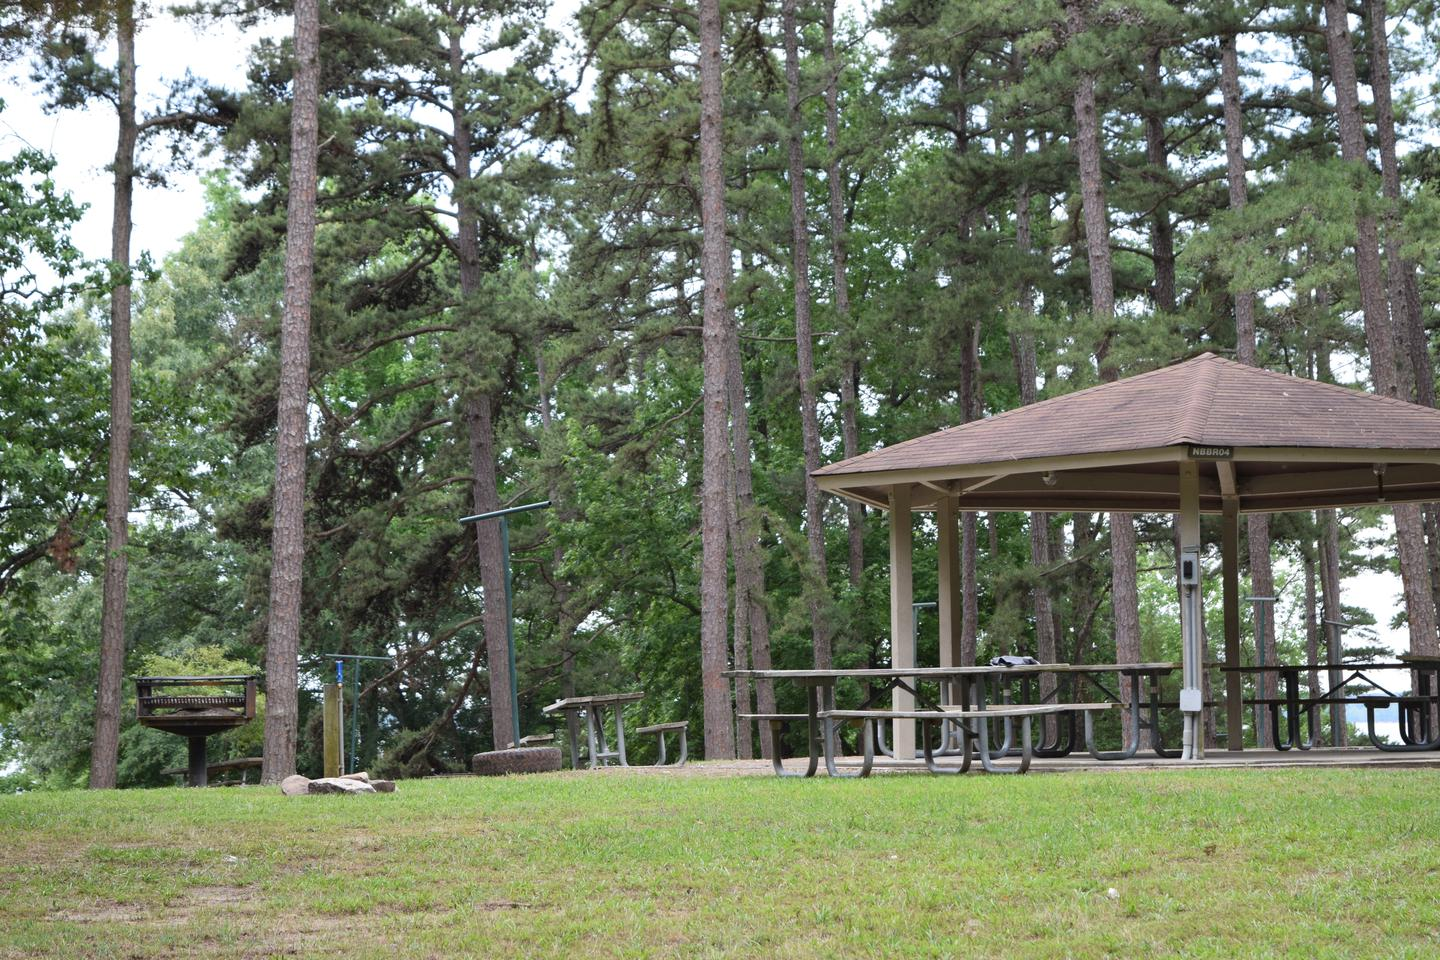 Mays Chapel Group Camping Area Shelter AreaWelcome to Mays Chapel Group Camping Area! This is a picture of the shelter area along with one of the grills located near by. This shelter does have electricity but does not have an electricity hook up for a camper.